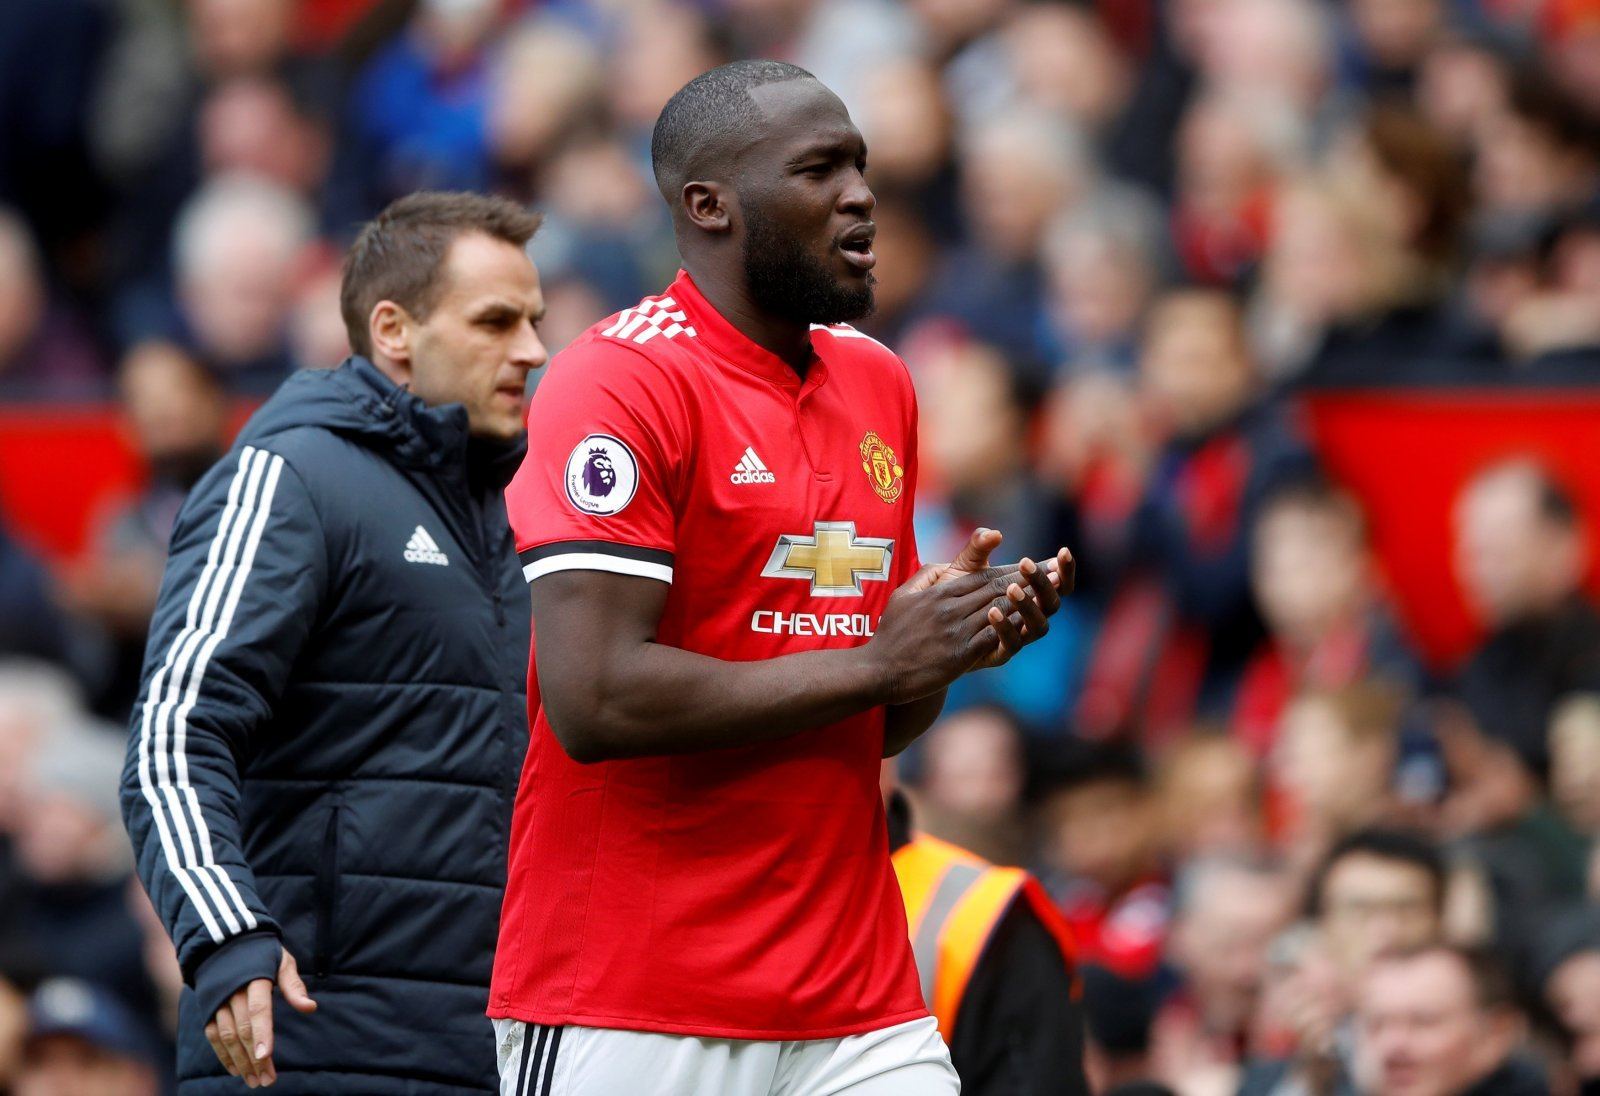 Manchester United don't need any summer signings if Lukaku can continue to fire